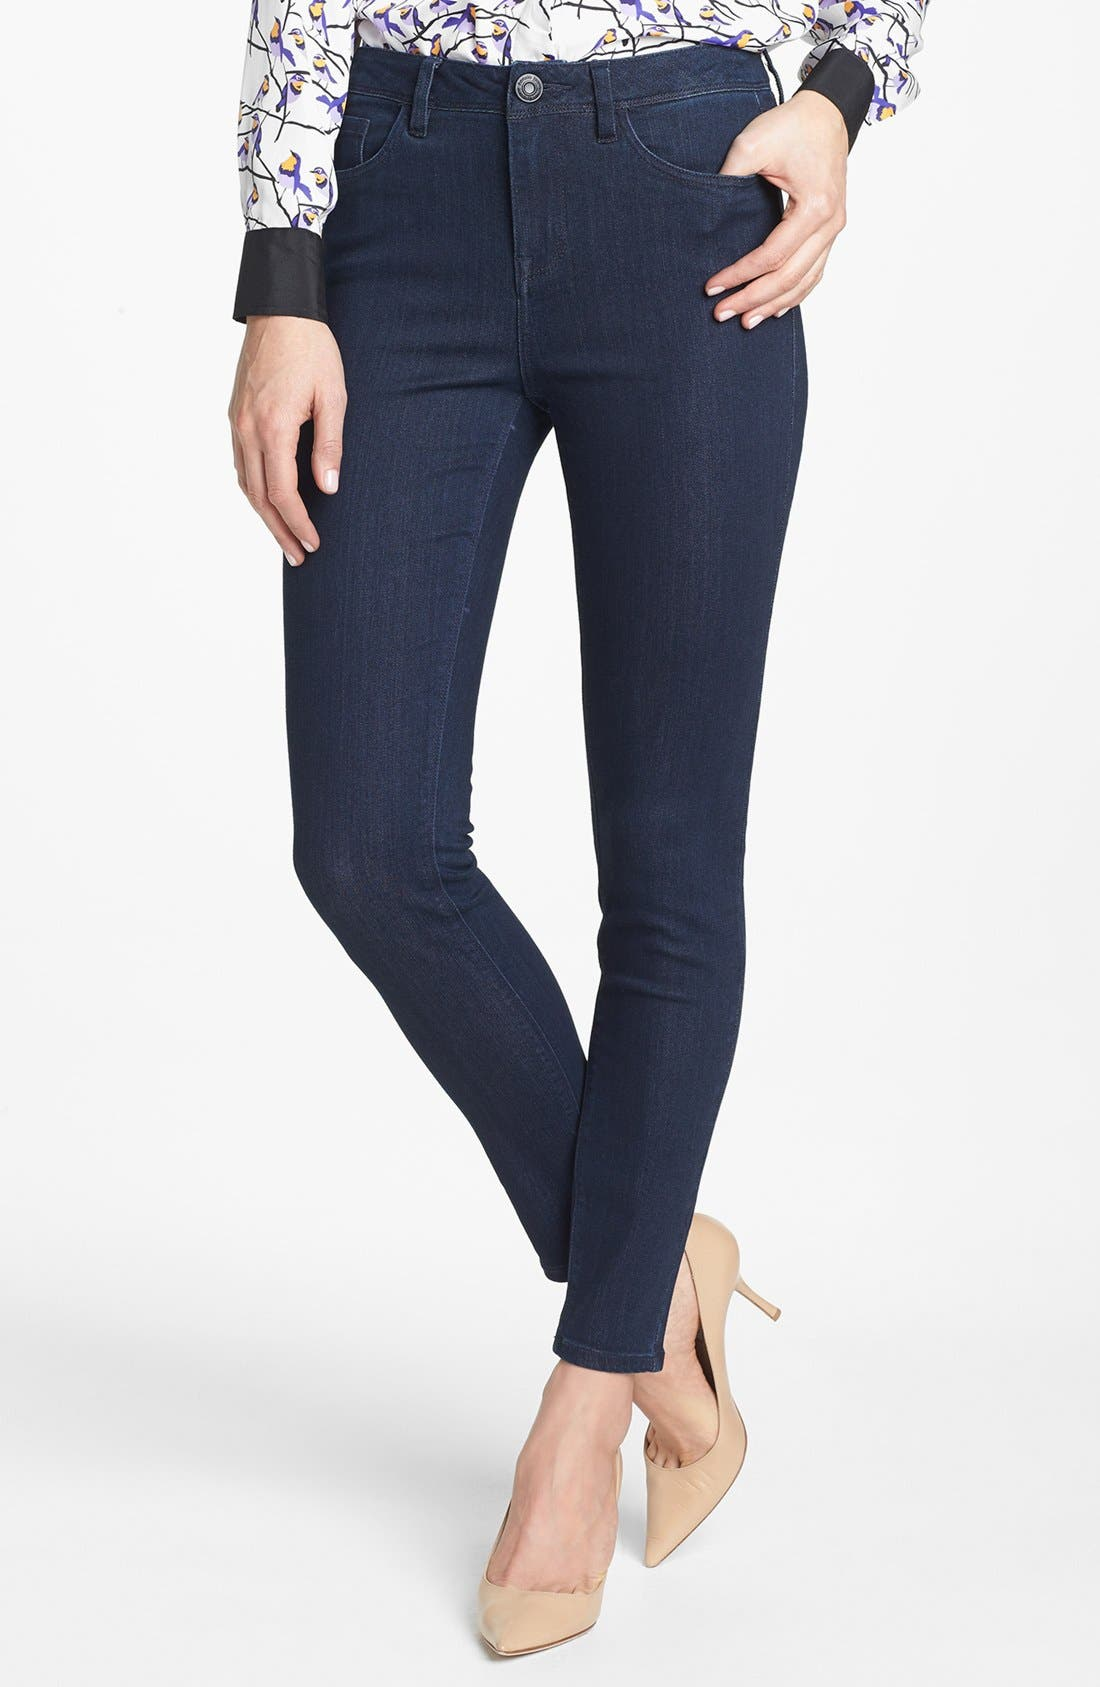 KENSIE,                             'Ankle Biter' High Rise Skinny Jeans,                             Main thumbnail 1, color,                             427